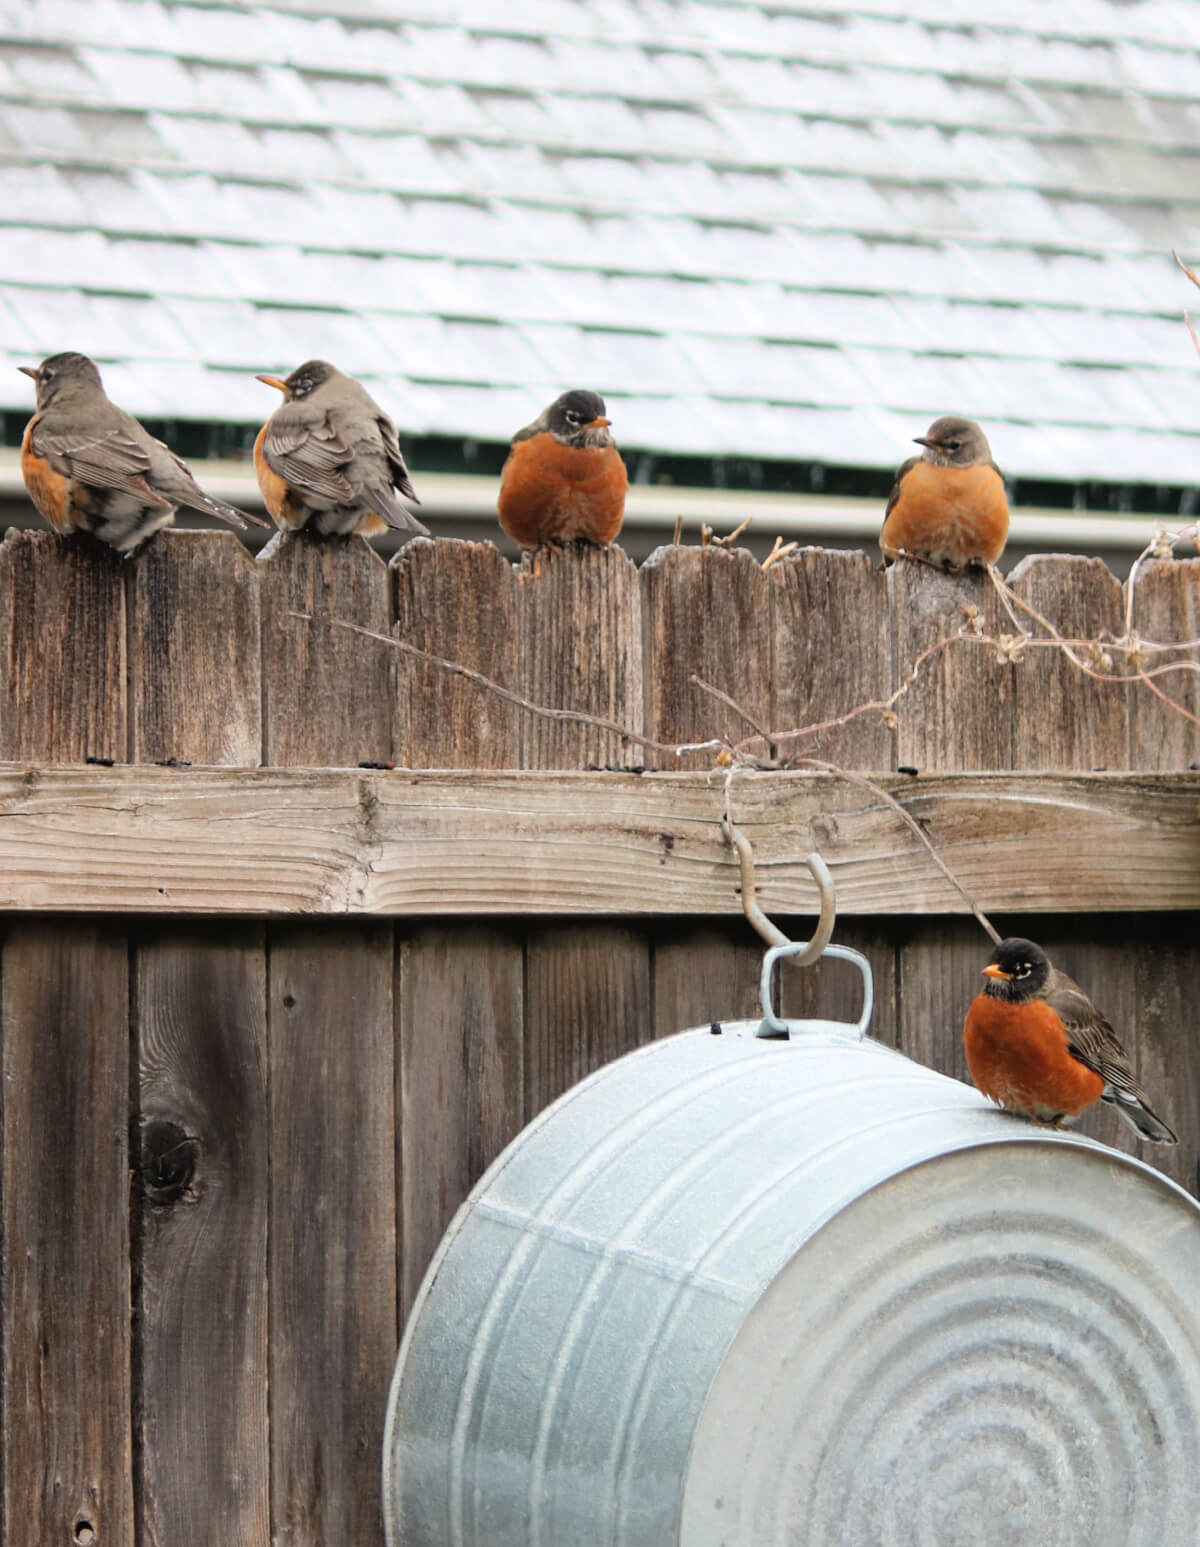 Winter Storm, More Robins & What I'm Reading & Listening To